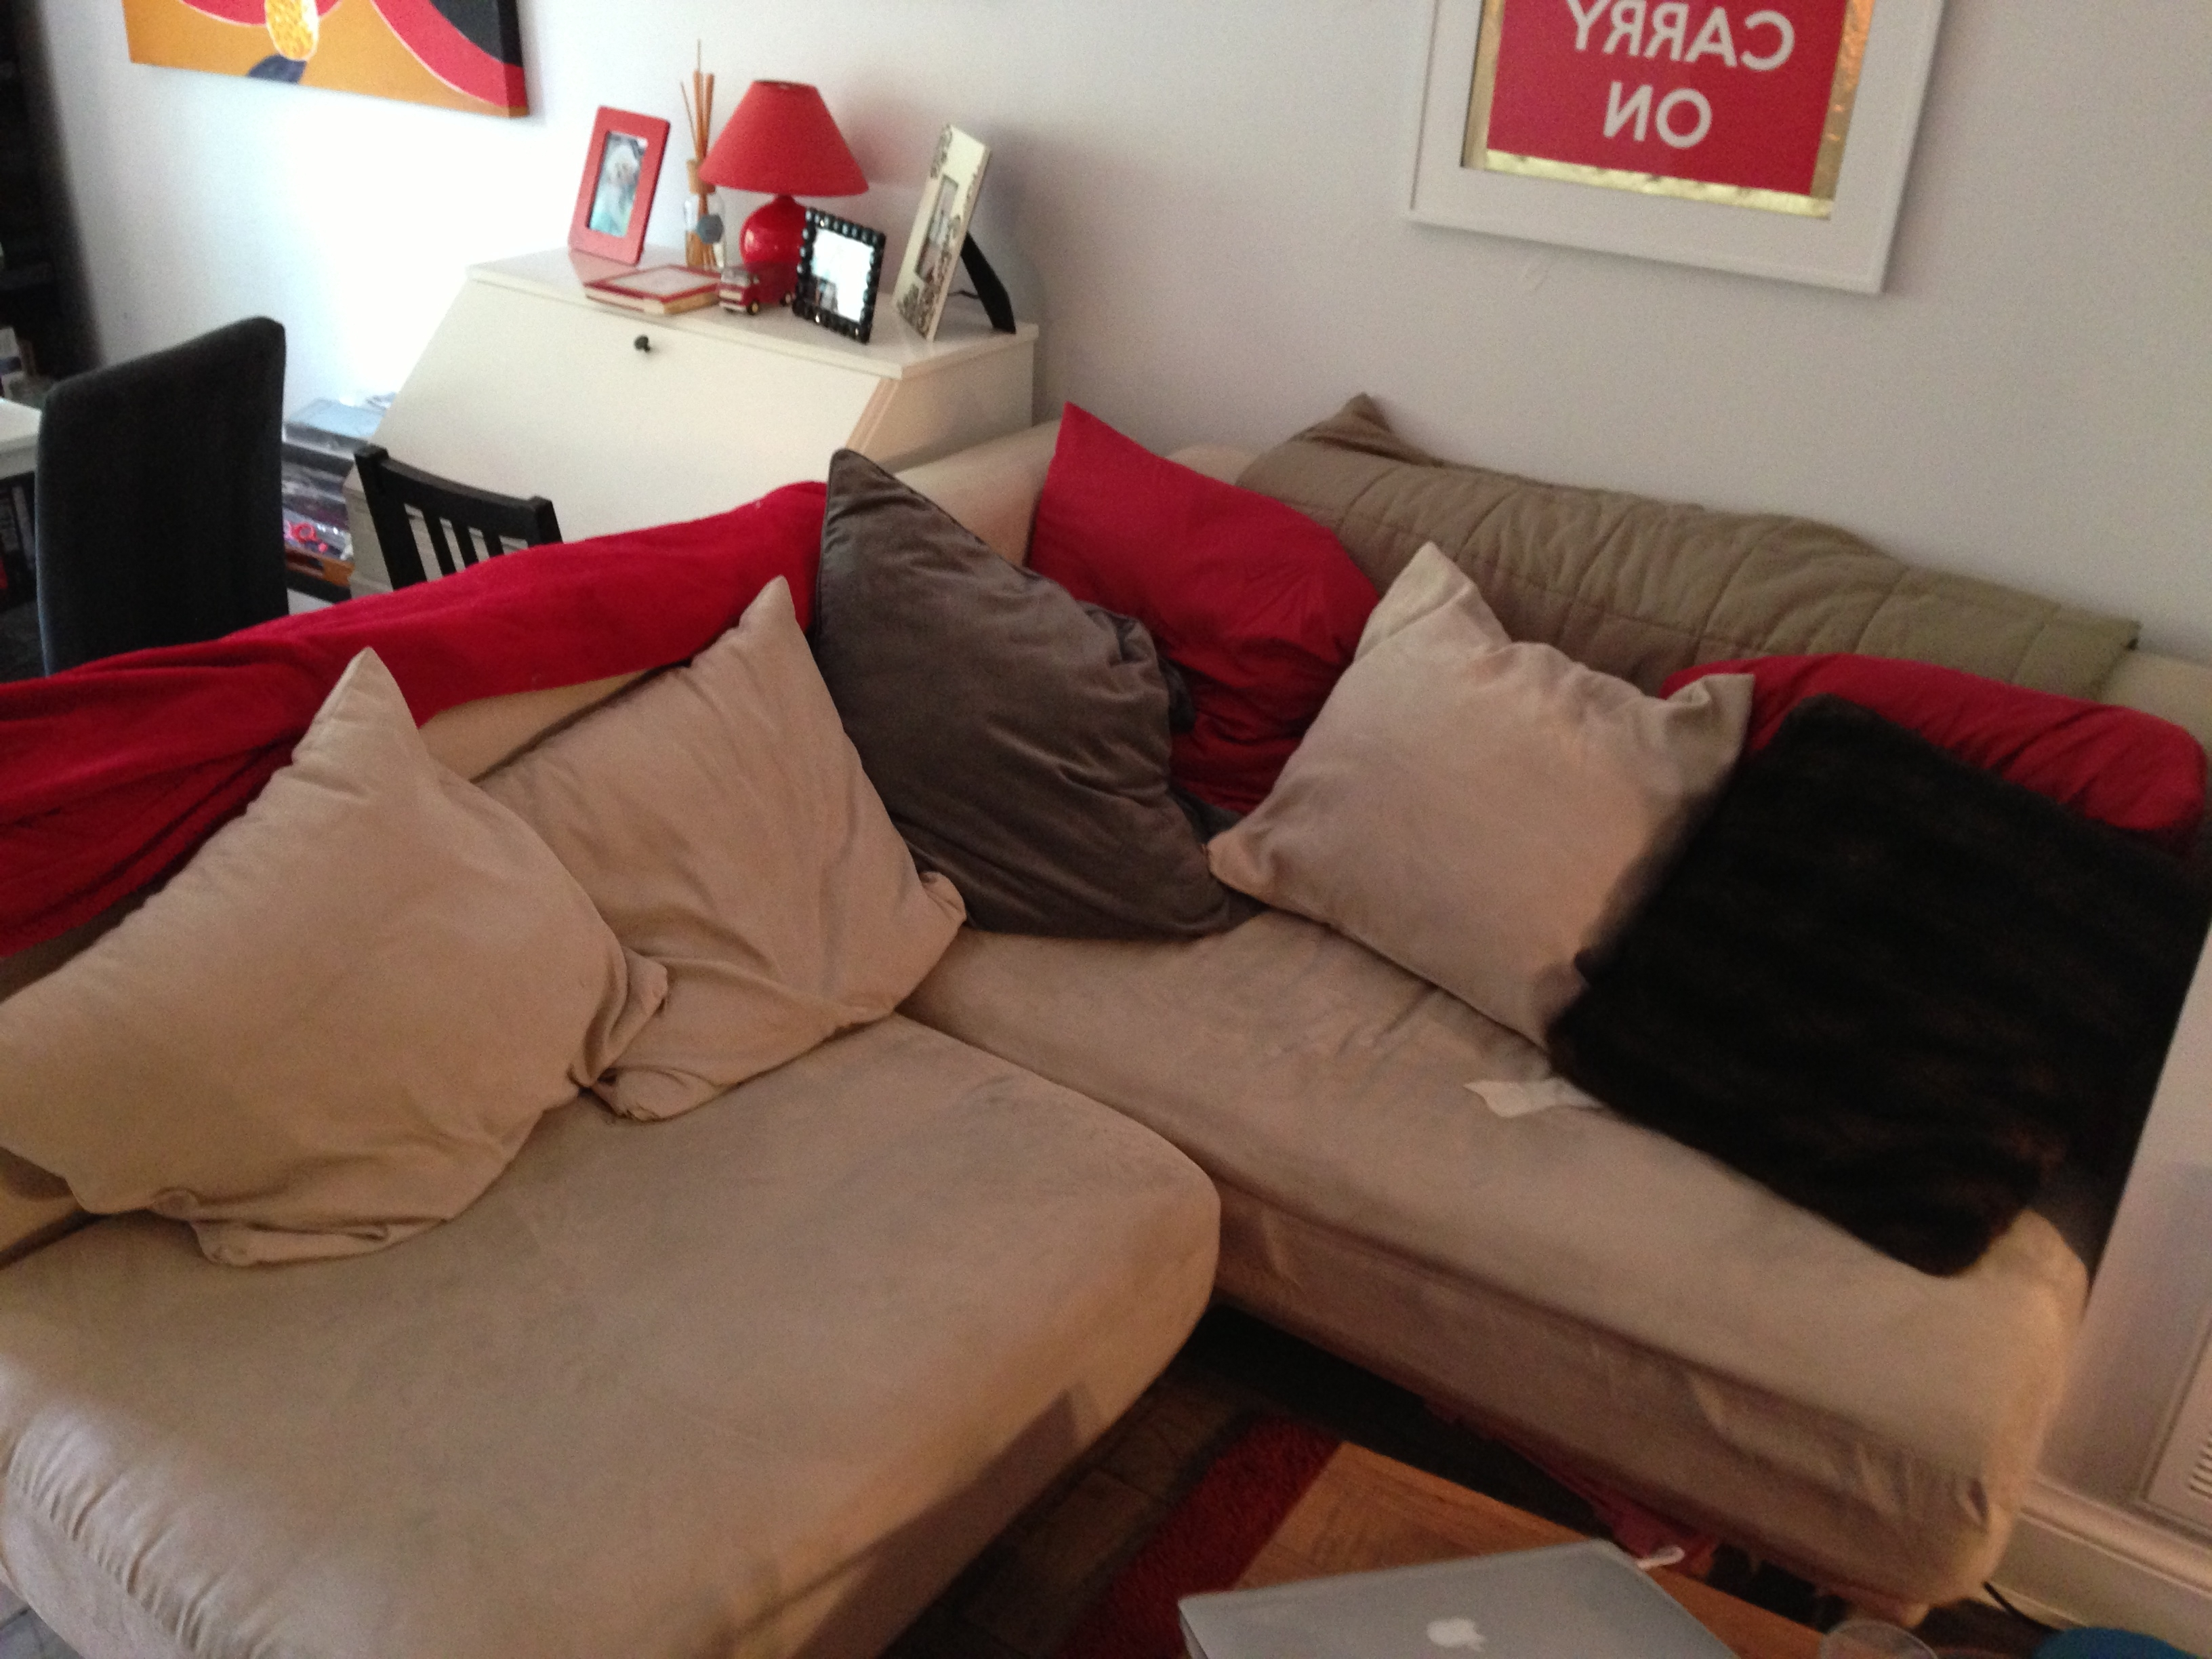 Used Sectional Sofas Within Recent Used Sectional Sofas Sale (View 14 of 15)